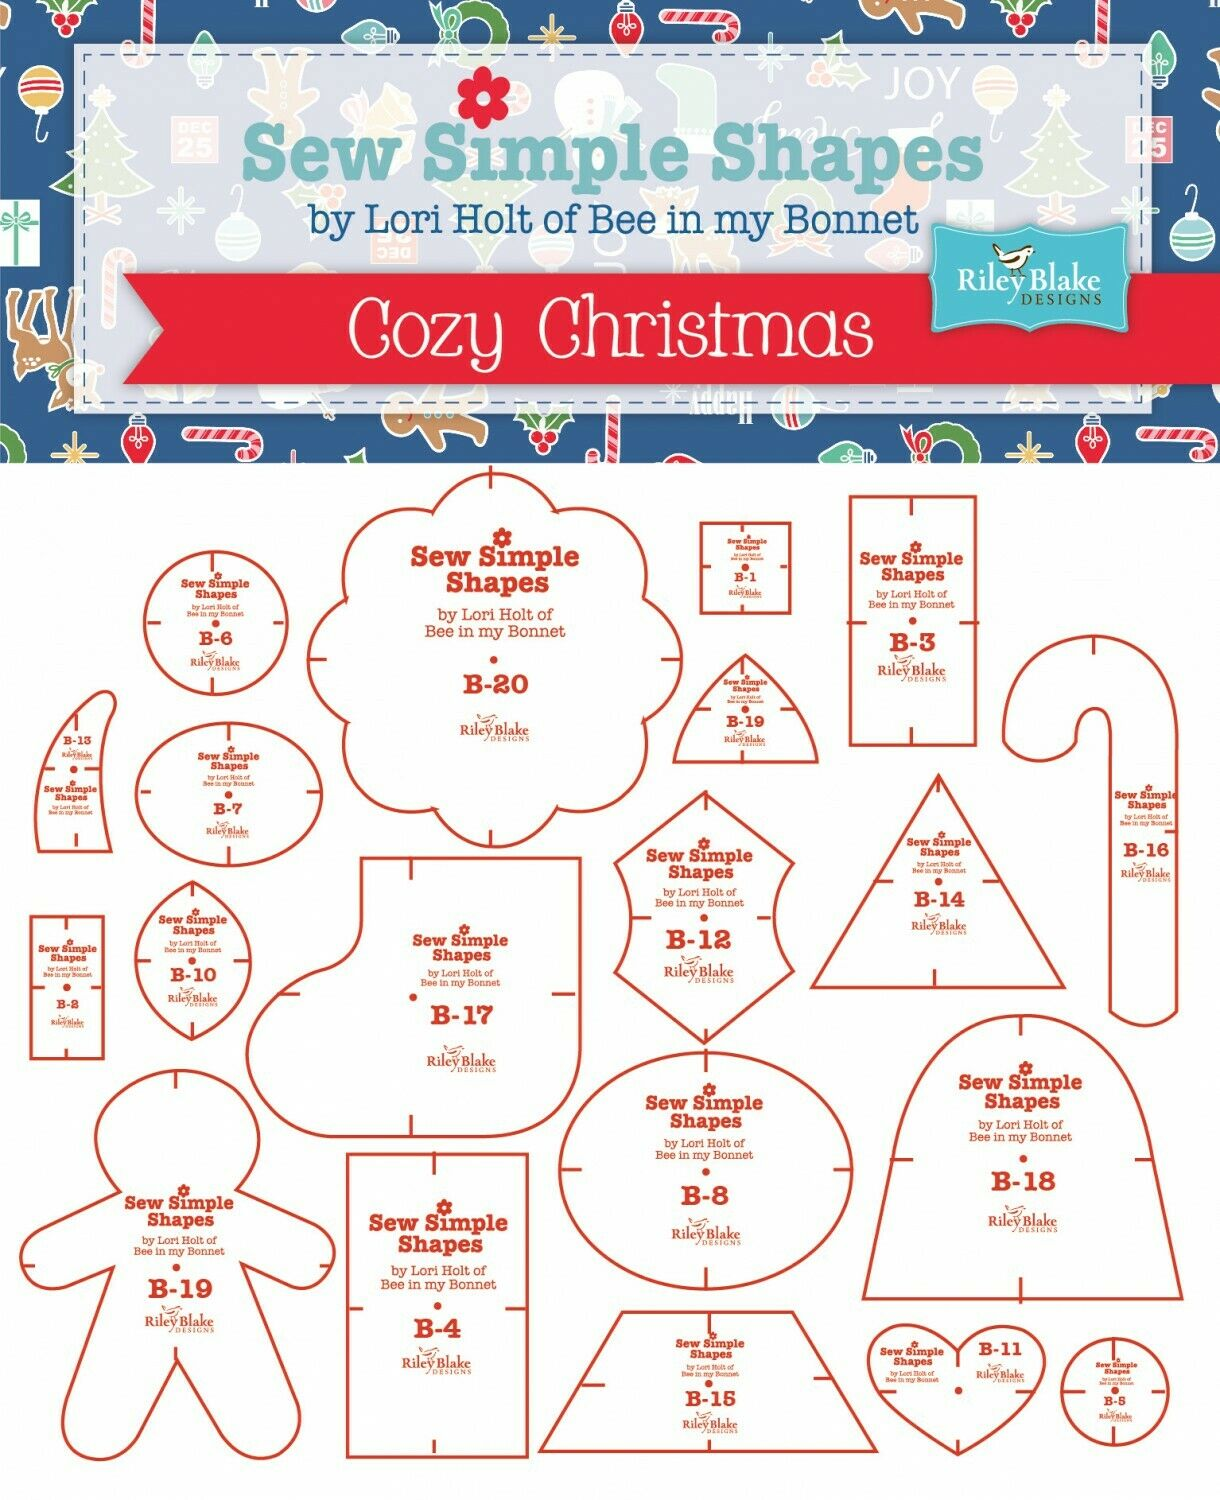 Sew Simple Shapes Cozy Christmas Templates (20) by Lori Holt